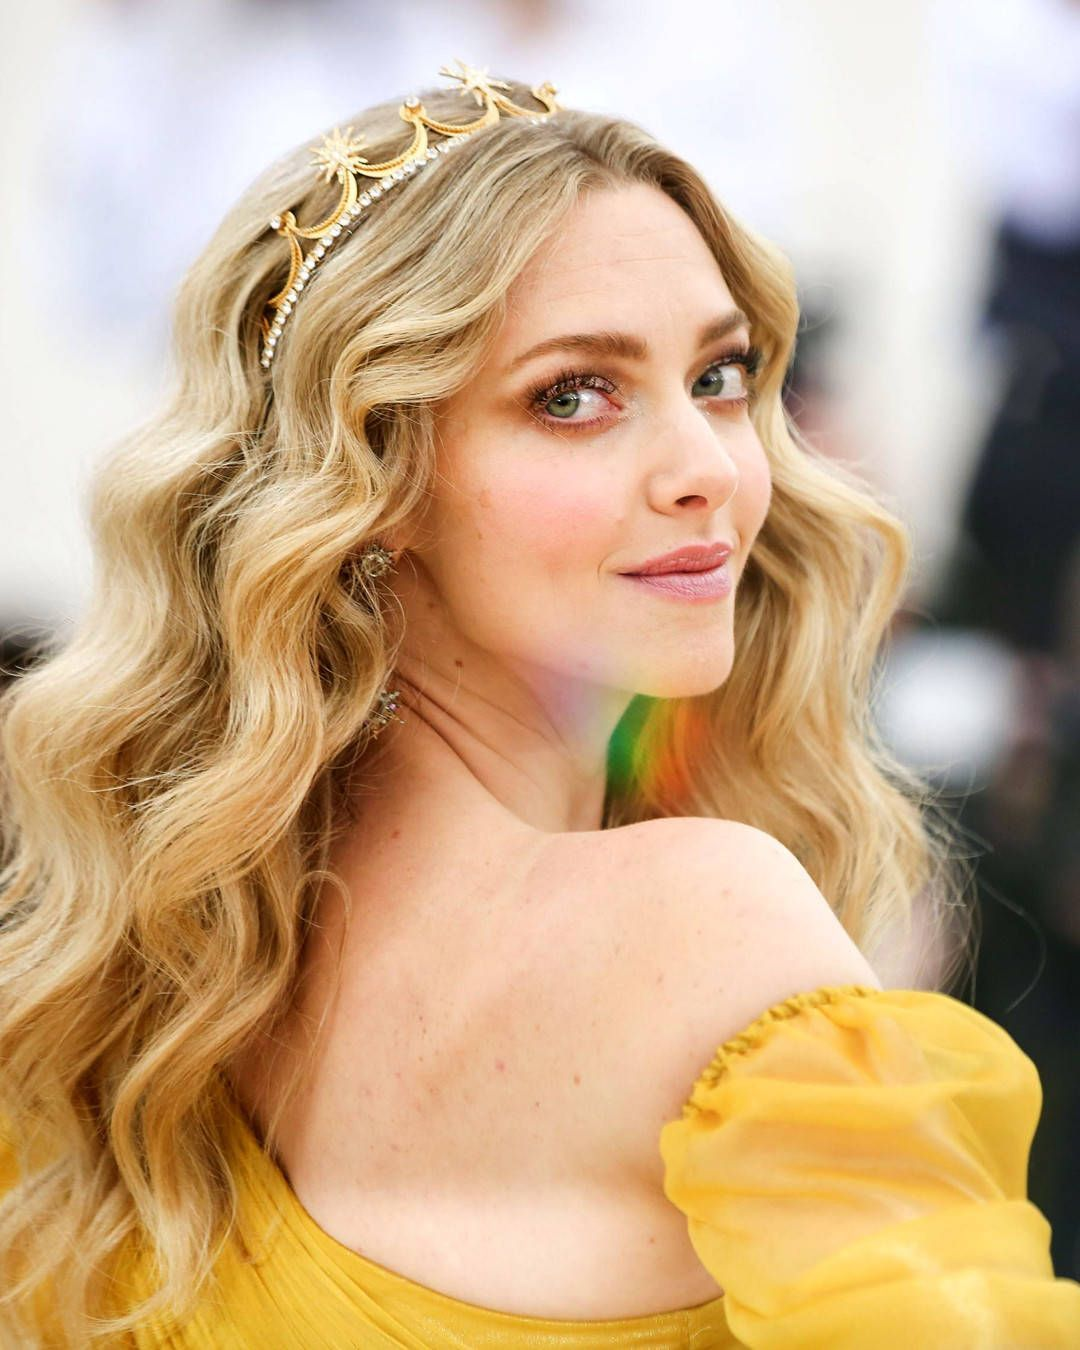 Amanda Seyfried from Best Beauty on the Met Gala 2018 Red Carpet -  Amanda Seyfried from Best Beauty on the Met Gala 2018 Red Carpet  The actress' makeup is summer g - #Actresses #amanda #beauty #carpet #Gala #Met #Red #seyfried #TomHiddleston